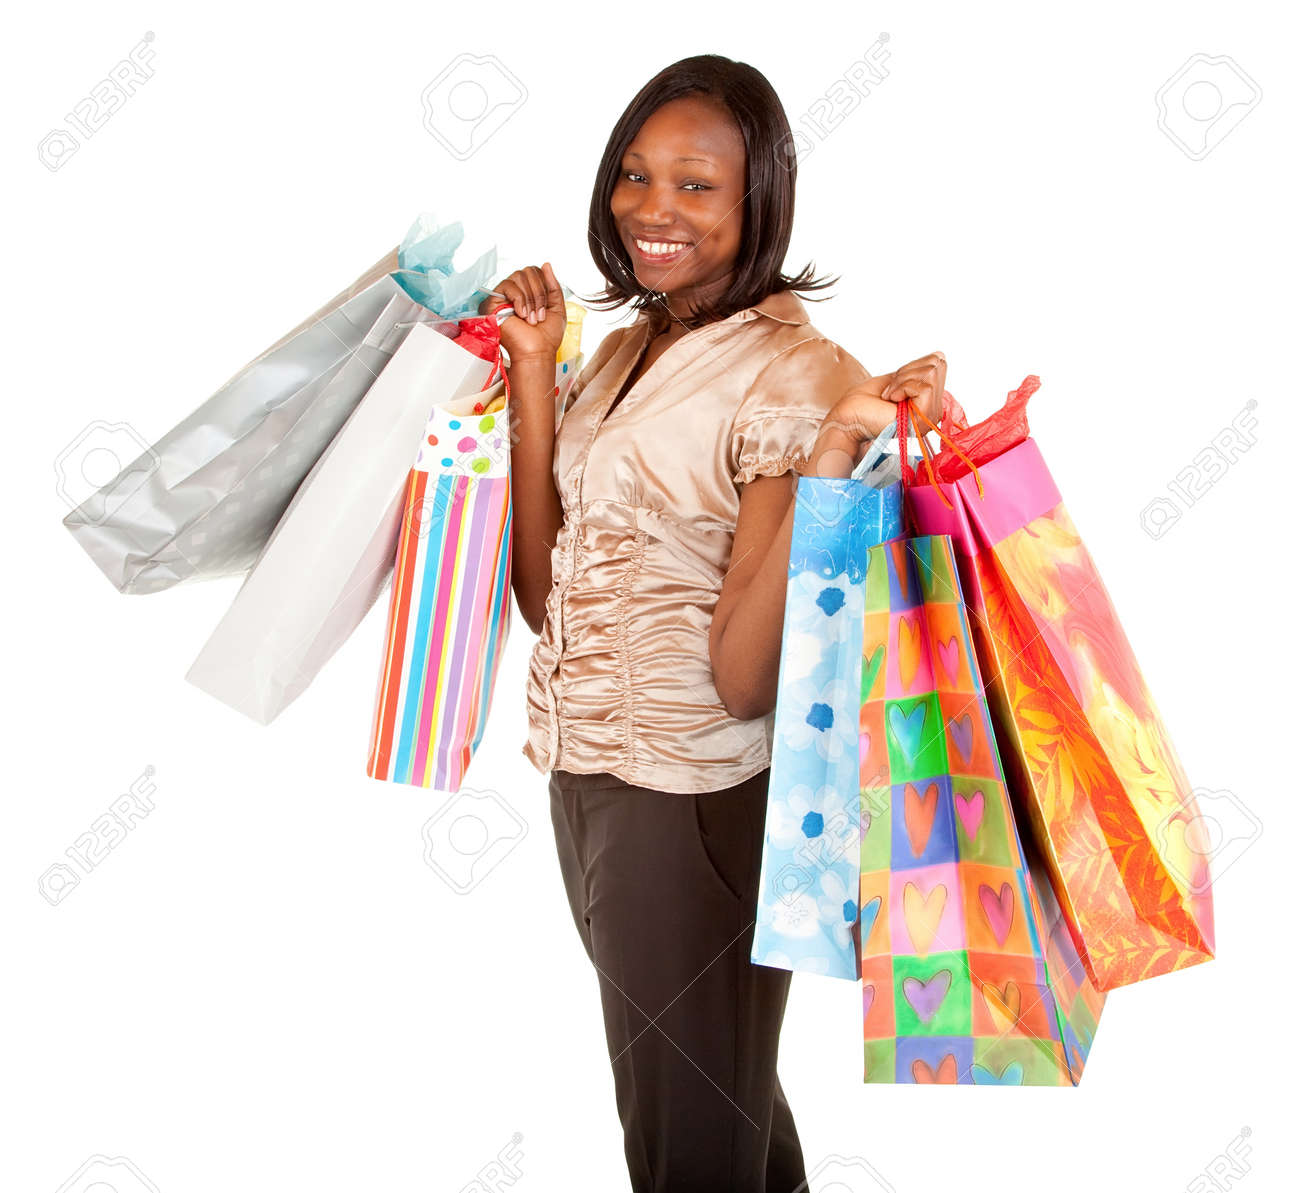 African American Woman on a Shopping Spree Stock Photo - 9766590